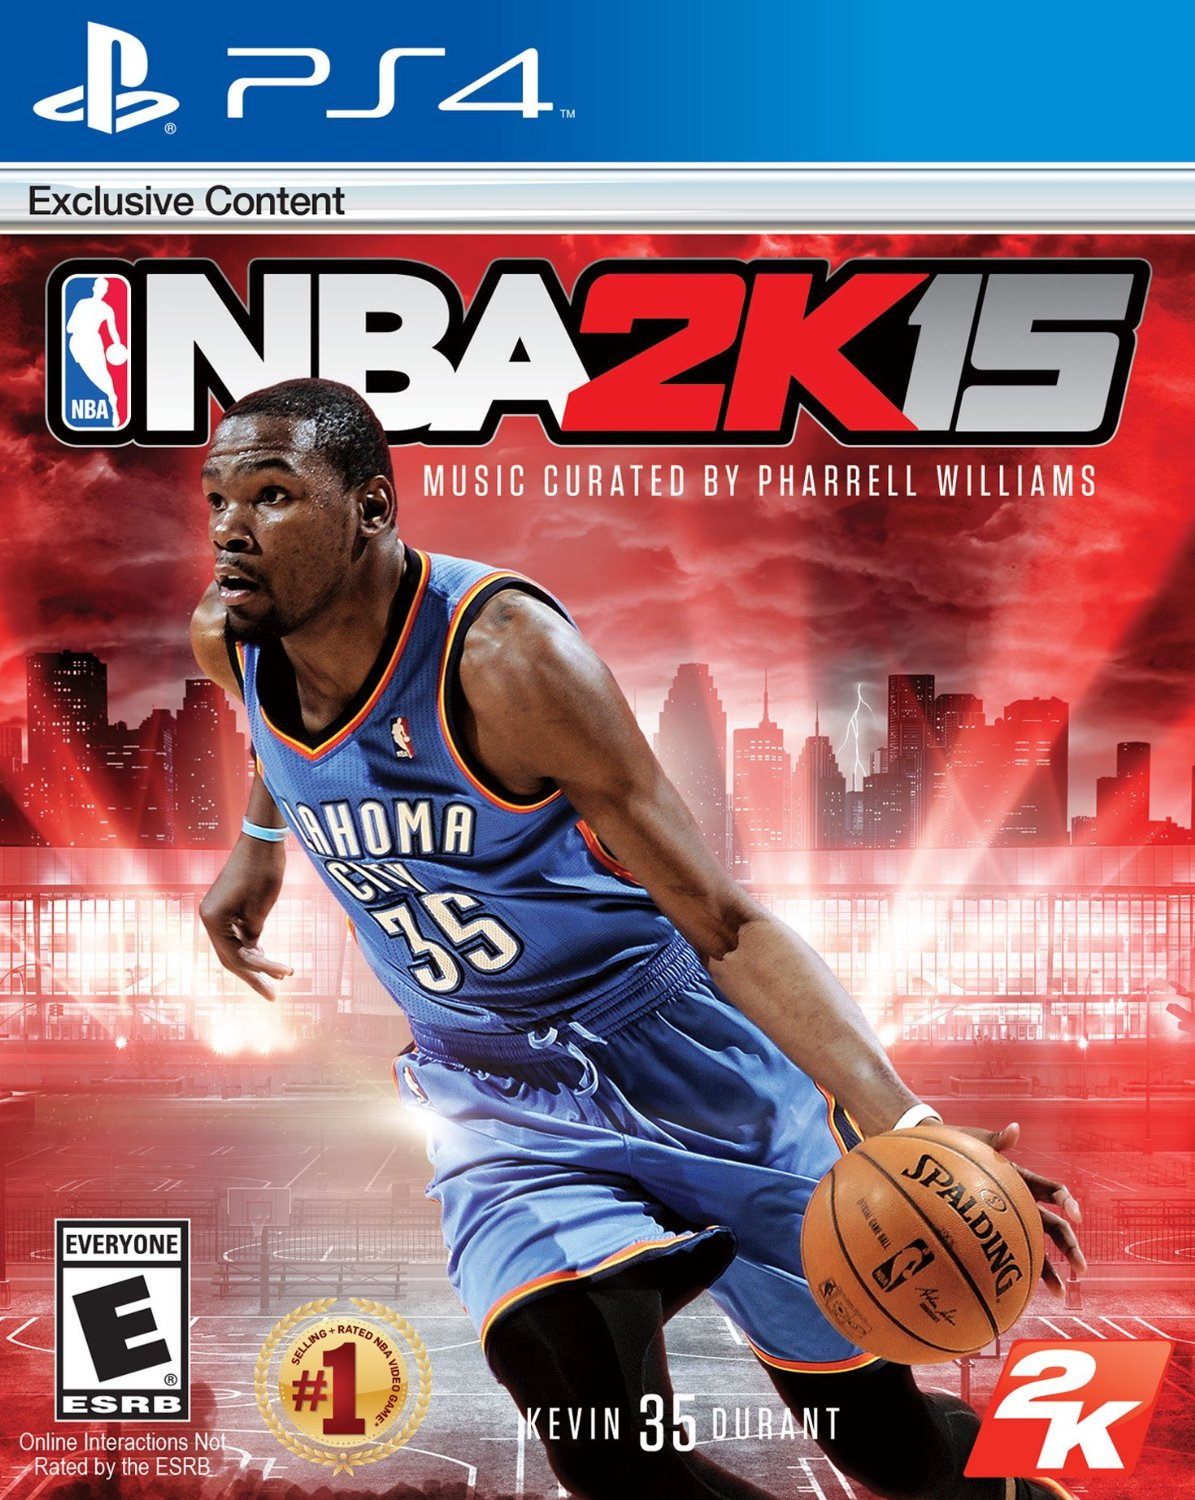 PS4 NBA 2K15 (PlayStation 4)